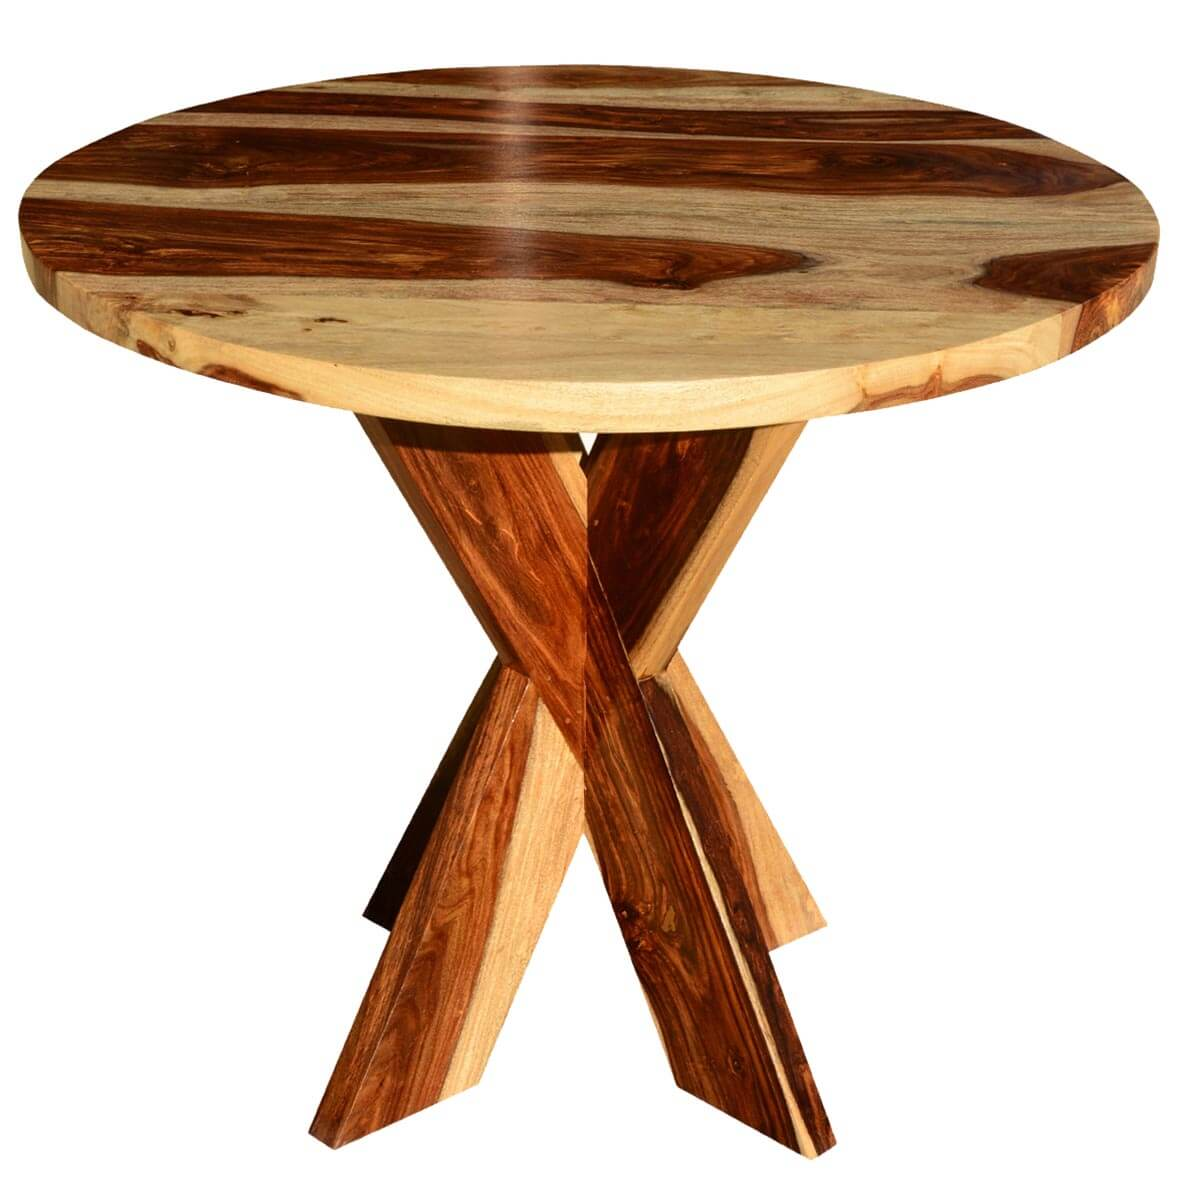 Dallas solid wood x pedestal round dining table for Solid wood round dining room table